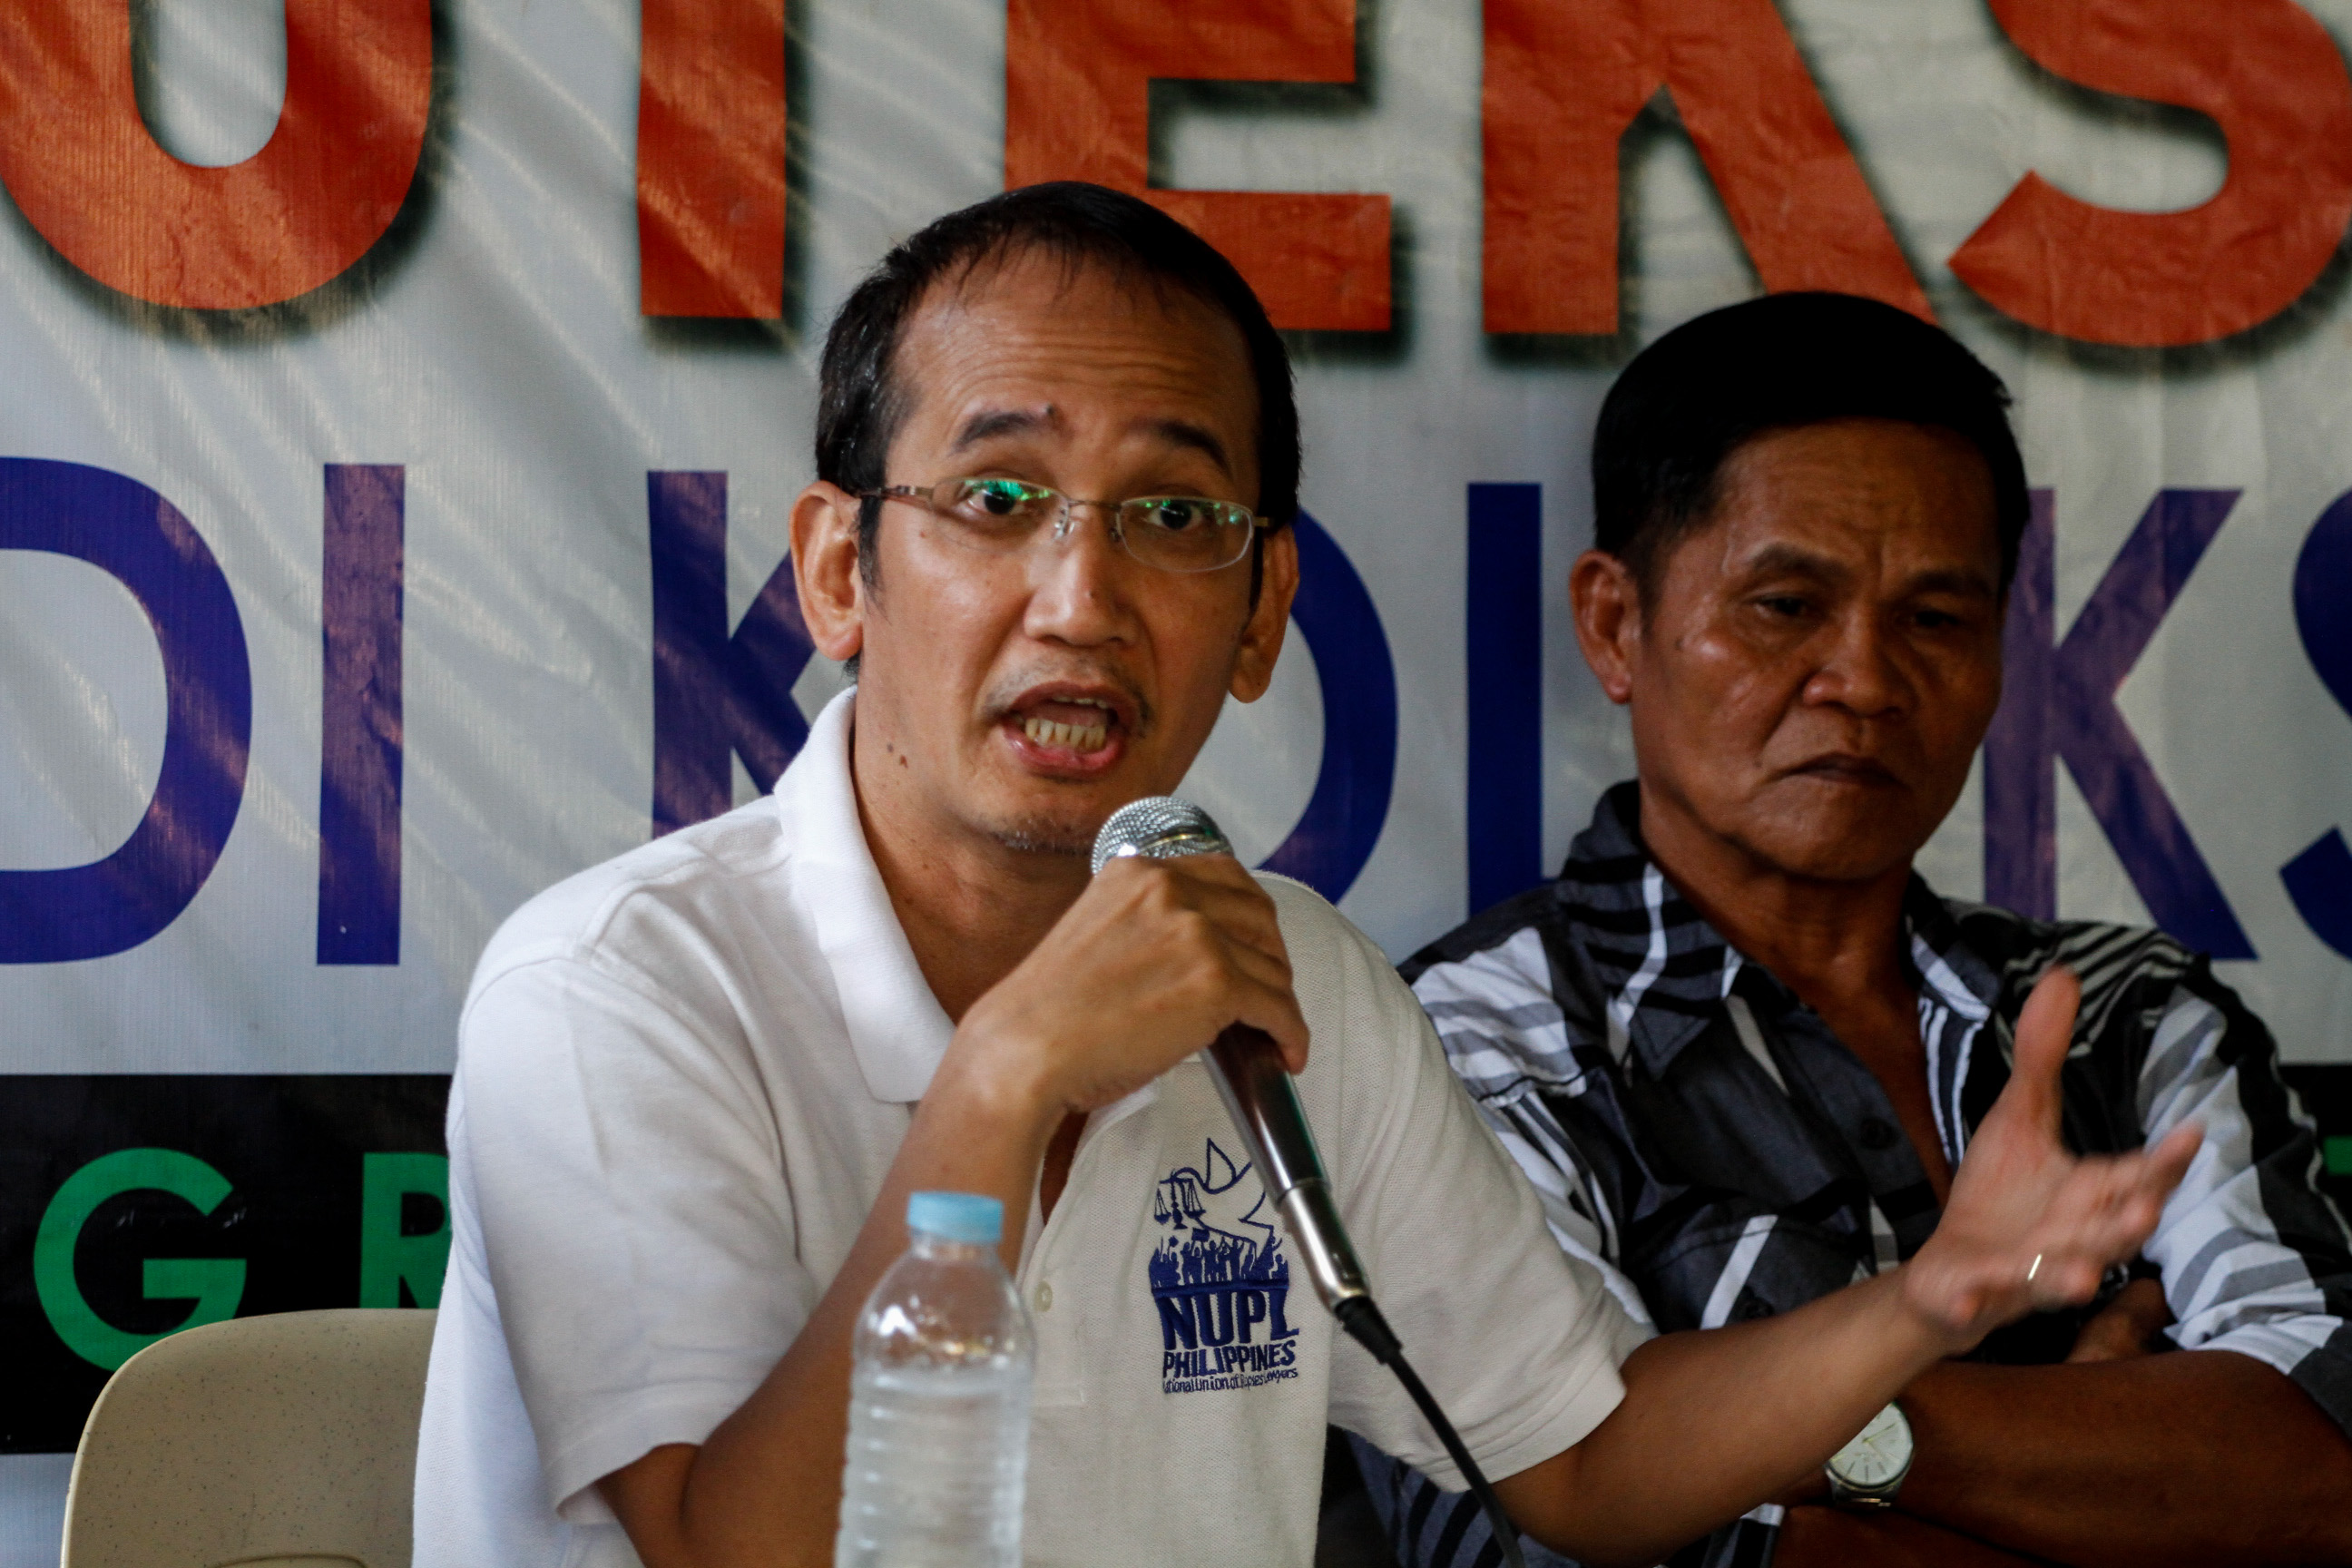 NUPL LAWYER. Atty Edre Olalia gives updates on Mary Jane's case during a press briefing. Photo by Mark Saludes/Rappler